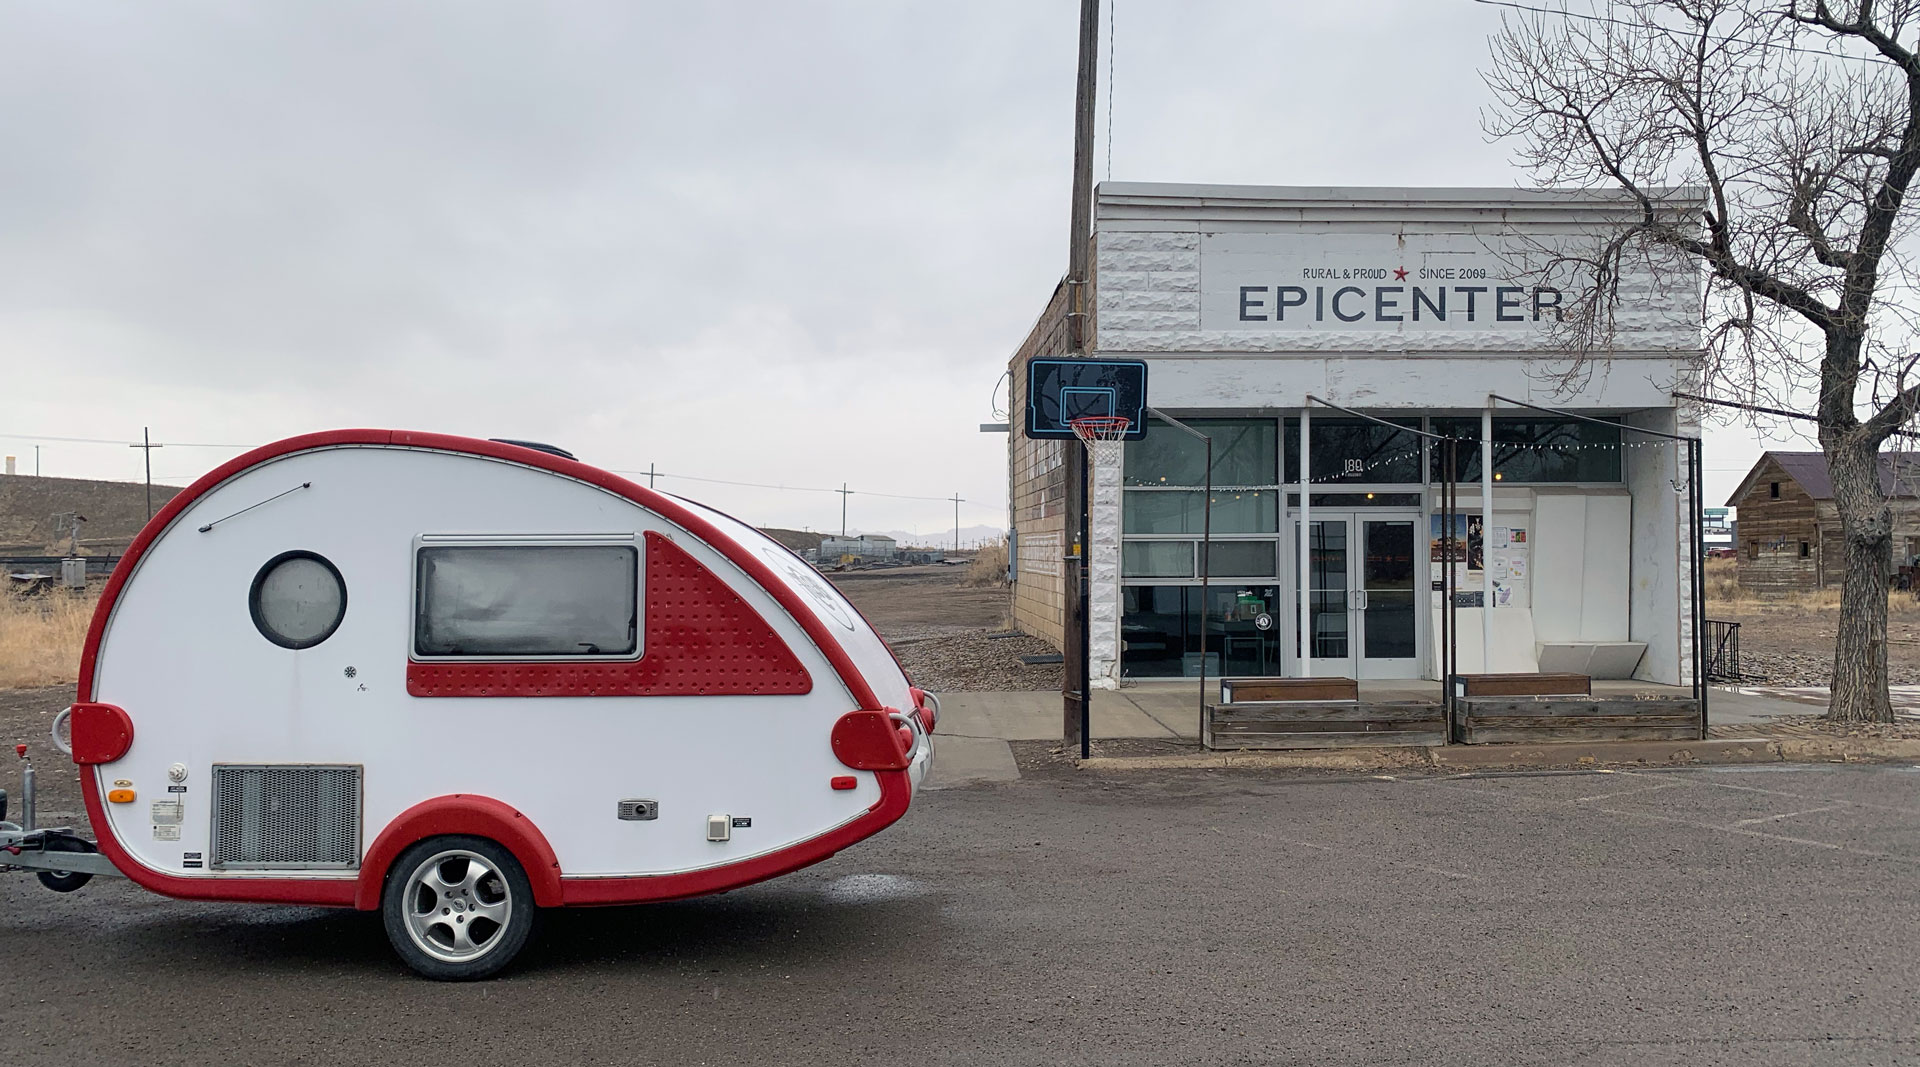 Katie Hargrave and Meredith Lynn Starting their trip outside of Epicenter in Green River, UT